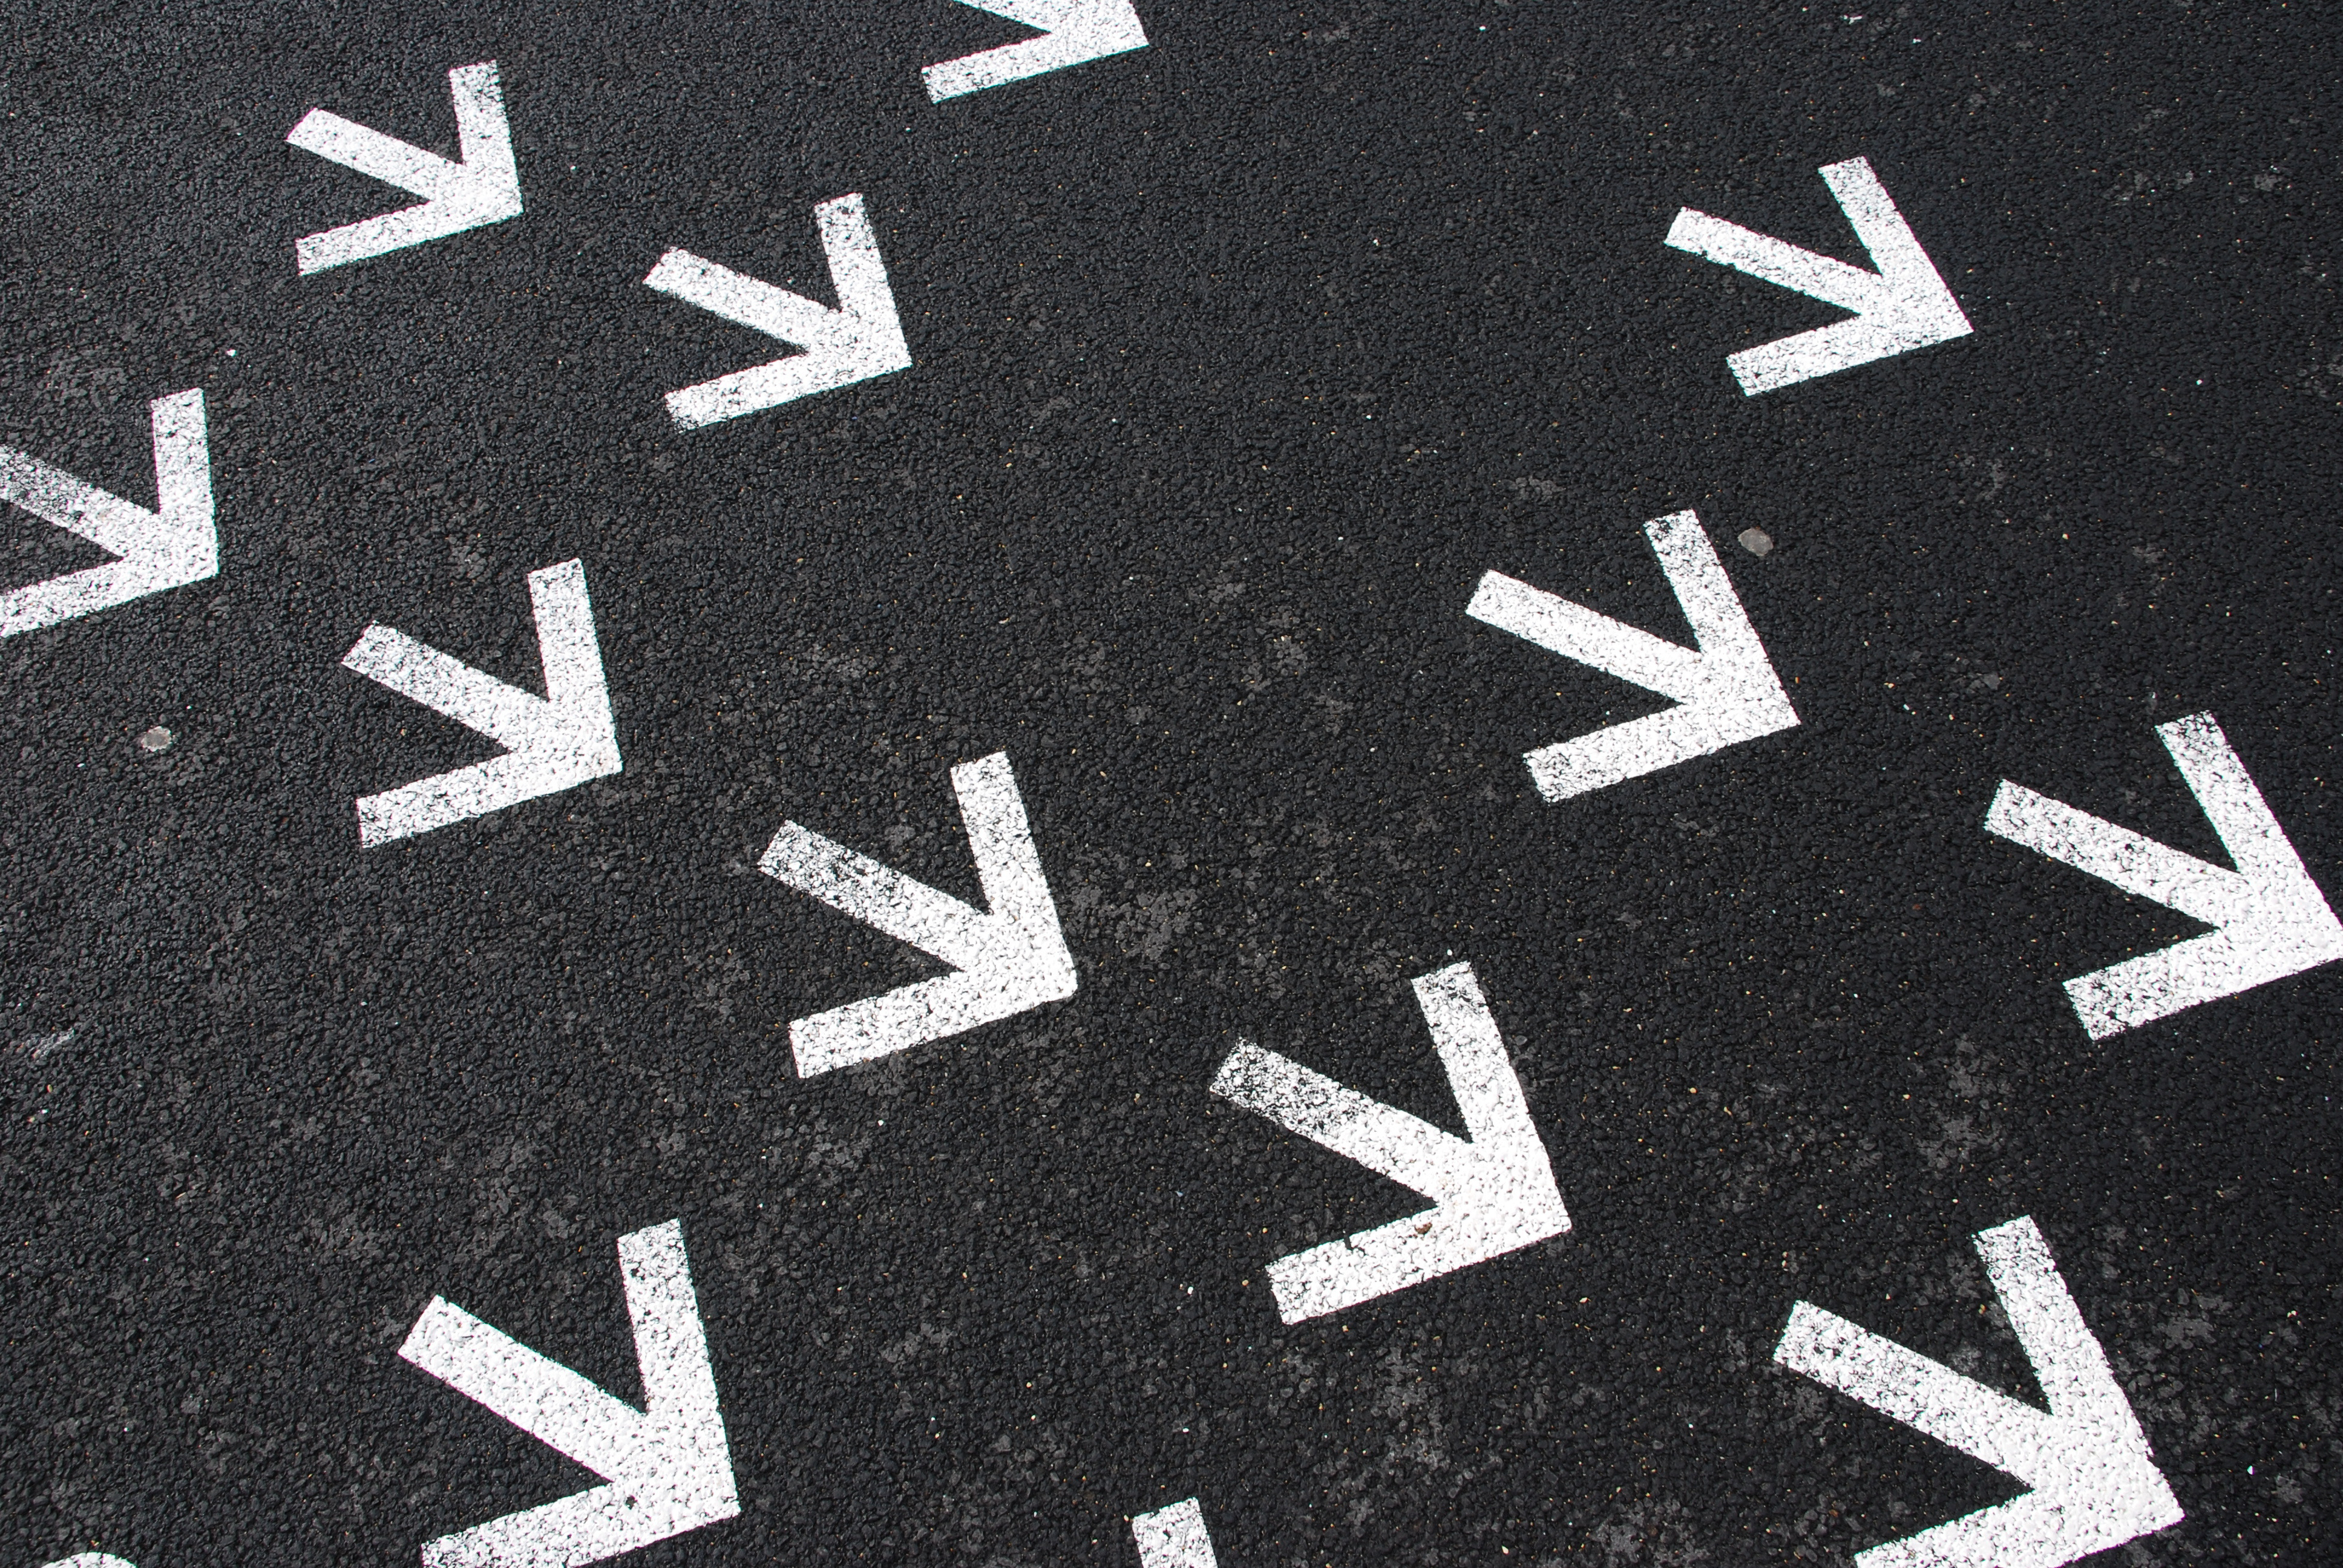 Moving Leadership Beyond Empty Mandates: The Road to Improved Academic Advising (Part 1)